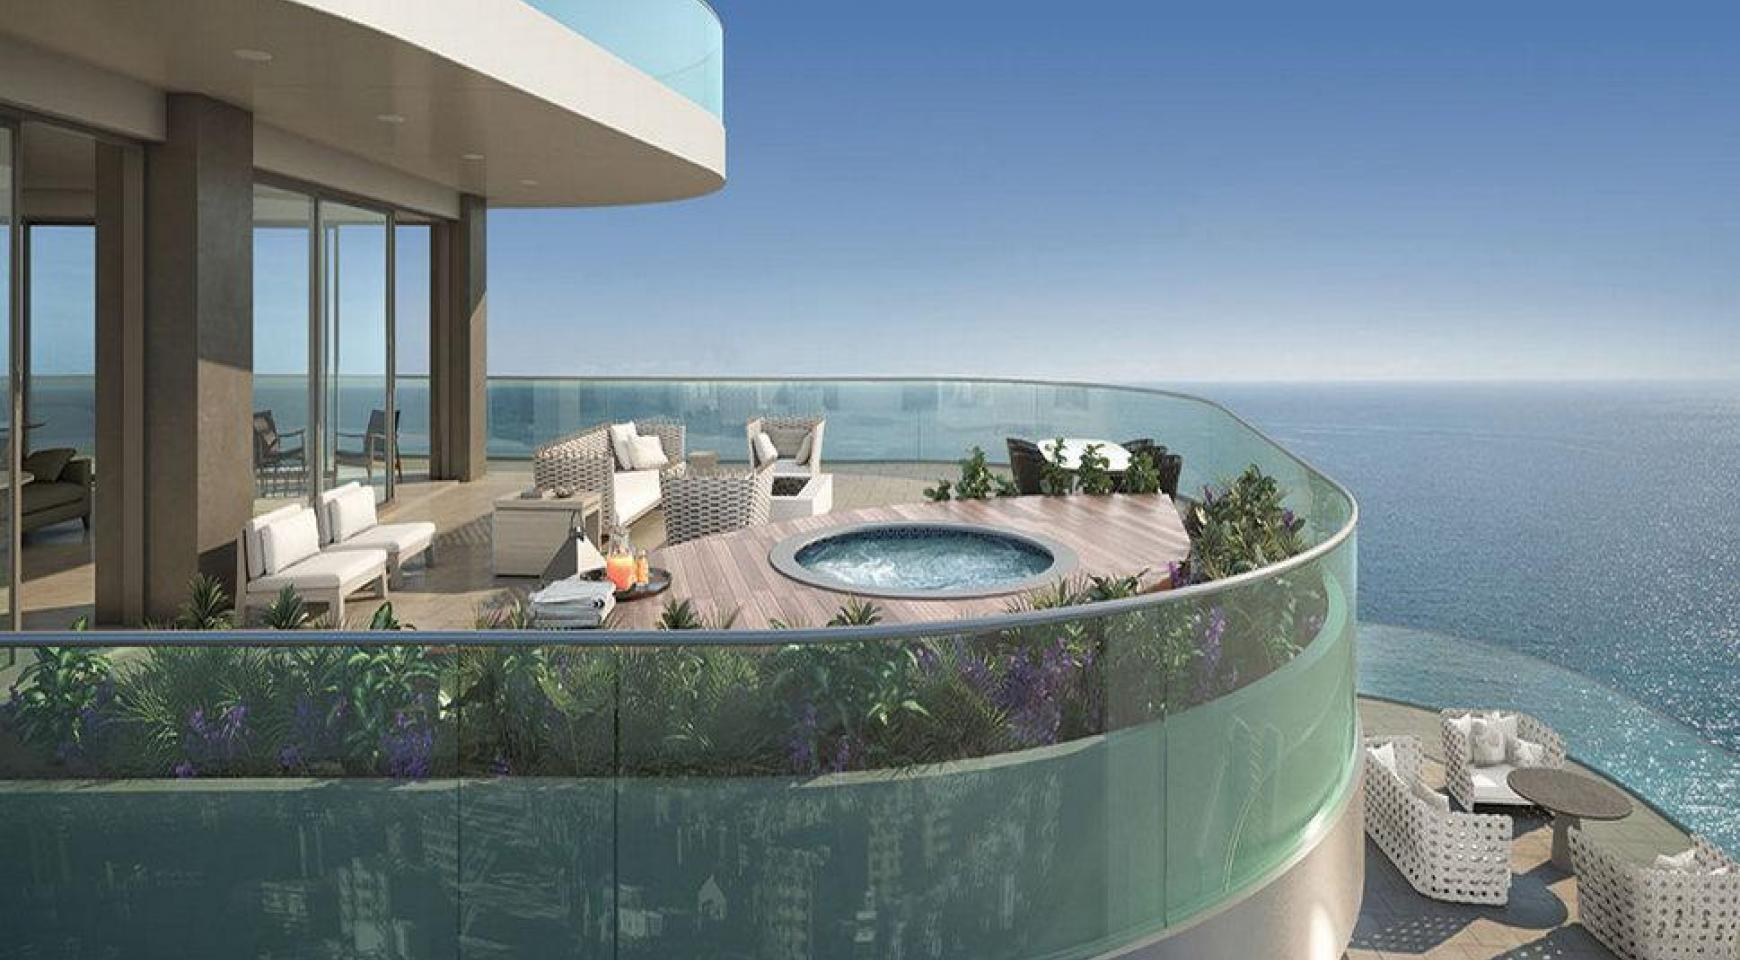 4 Bedroom Apartment in an Exclusive Seafront Project   - 3